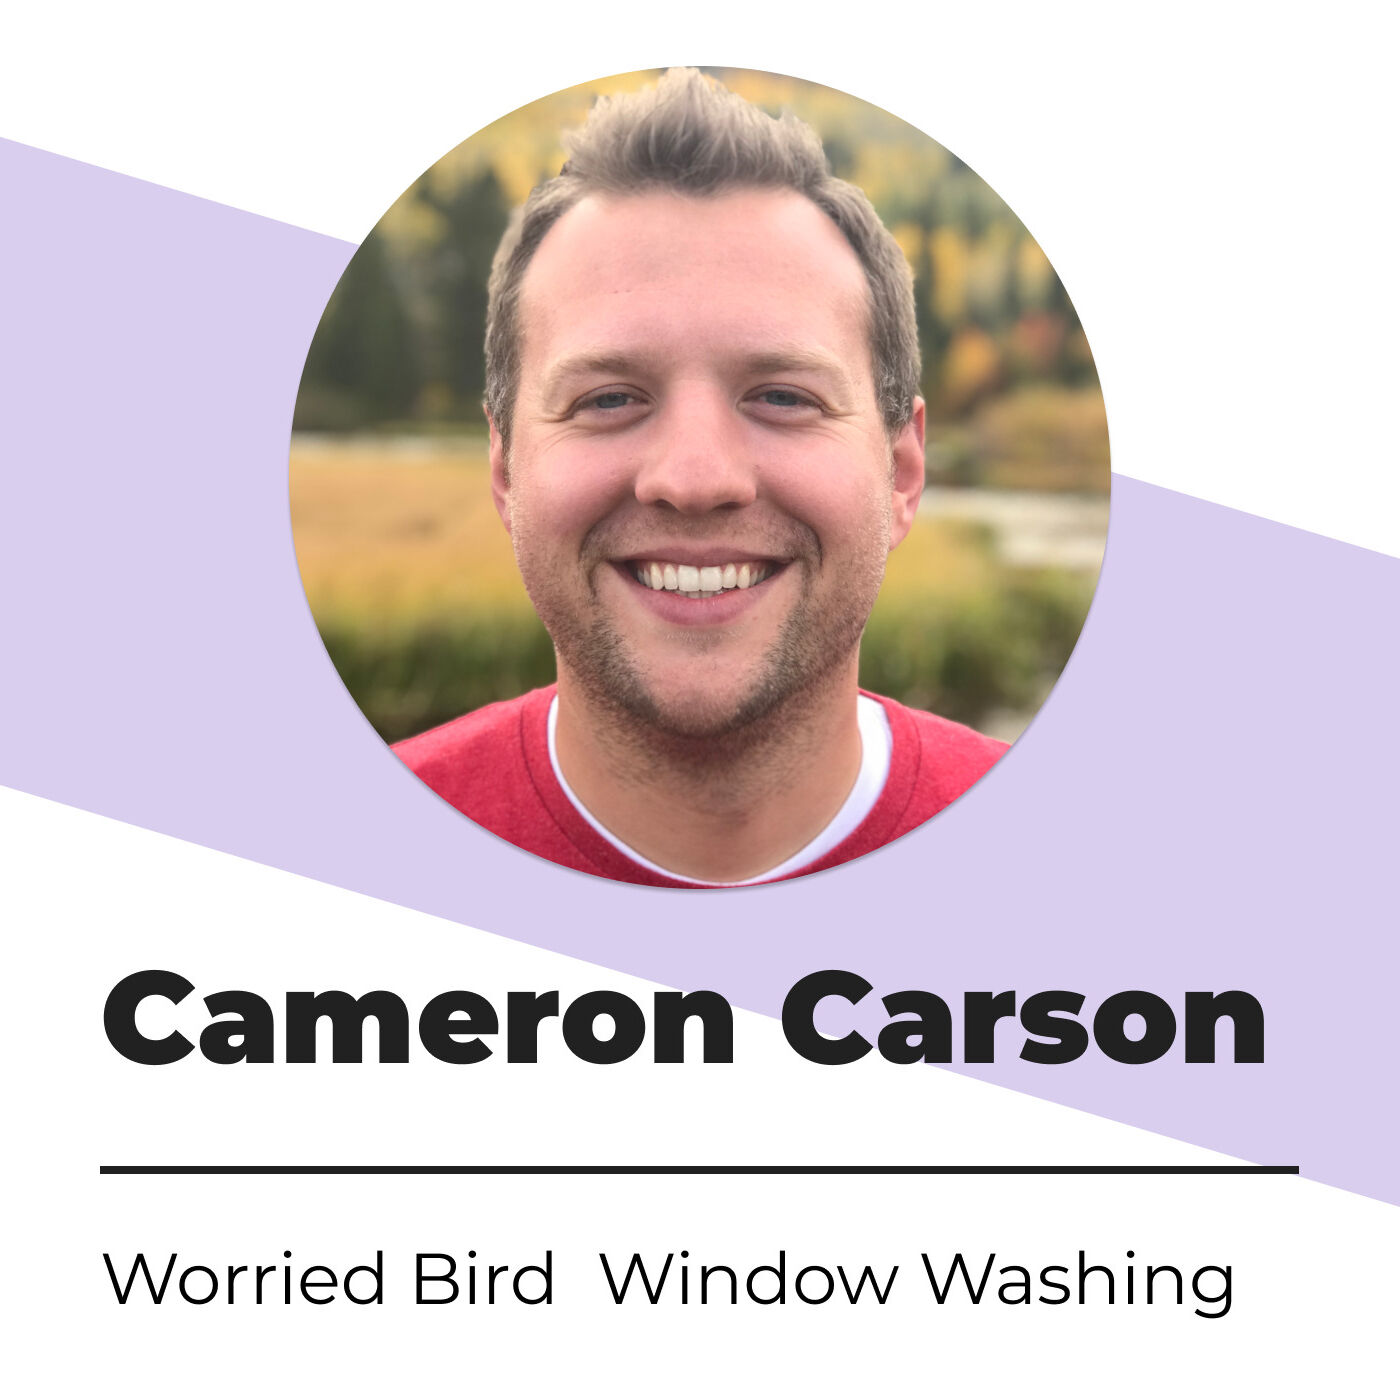 Franchising Your Business with Cameron Carson